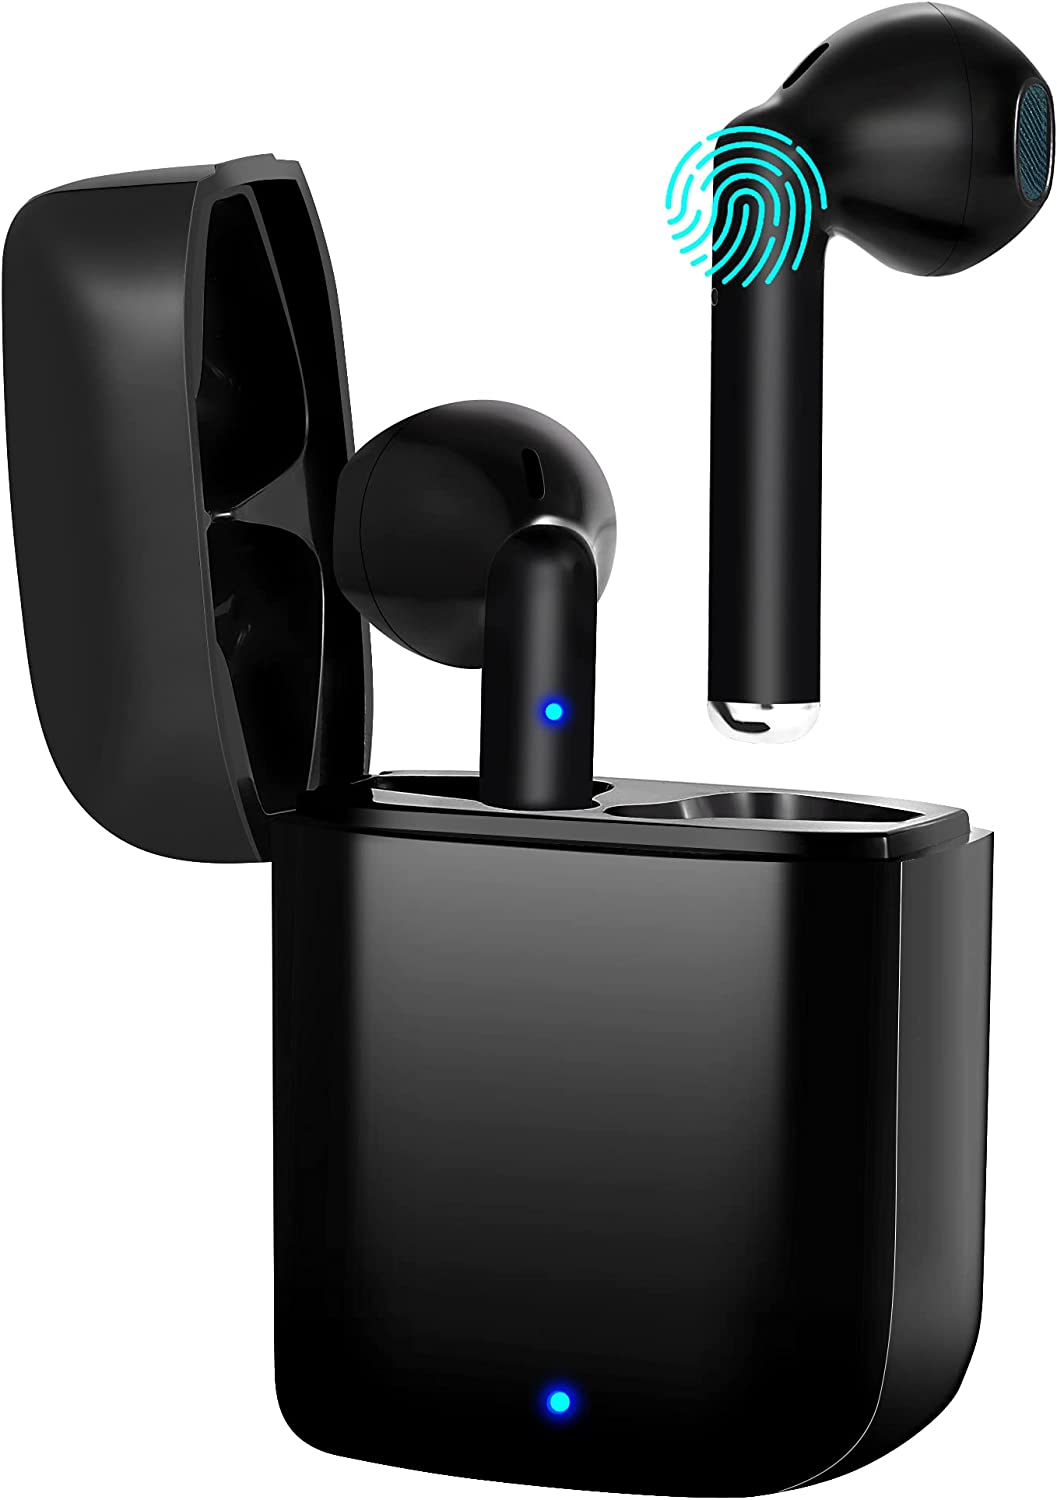 Wireless Earbuds,Bluetooth 5.2 Earphones,True Wireless Bluetooth Earbuds,IPX7 Earbuds,with Fast Charging Box,Suitable for Sports and Work (Black)